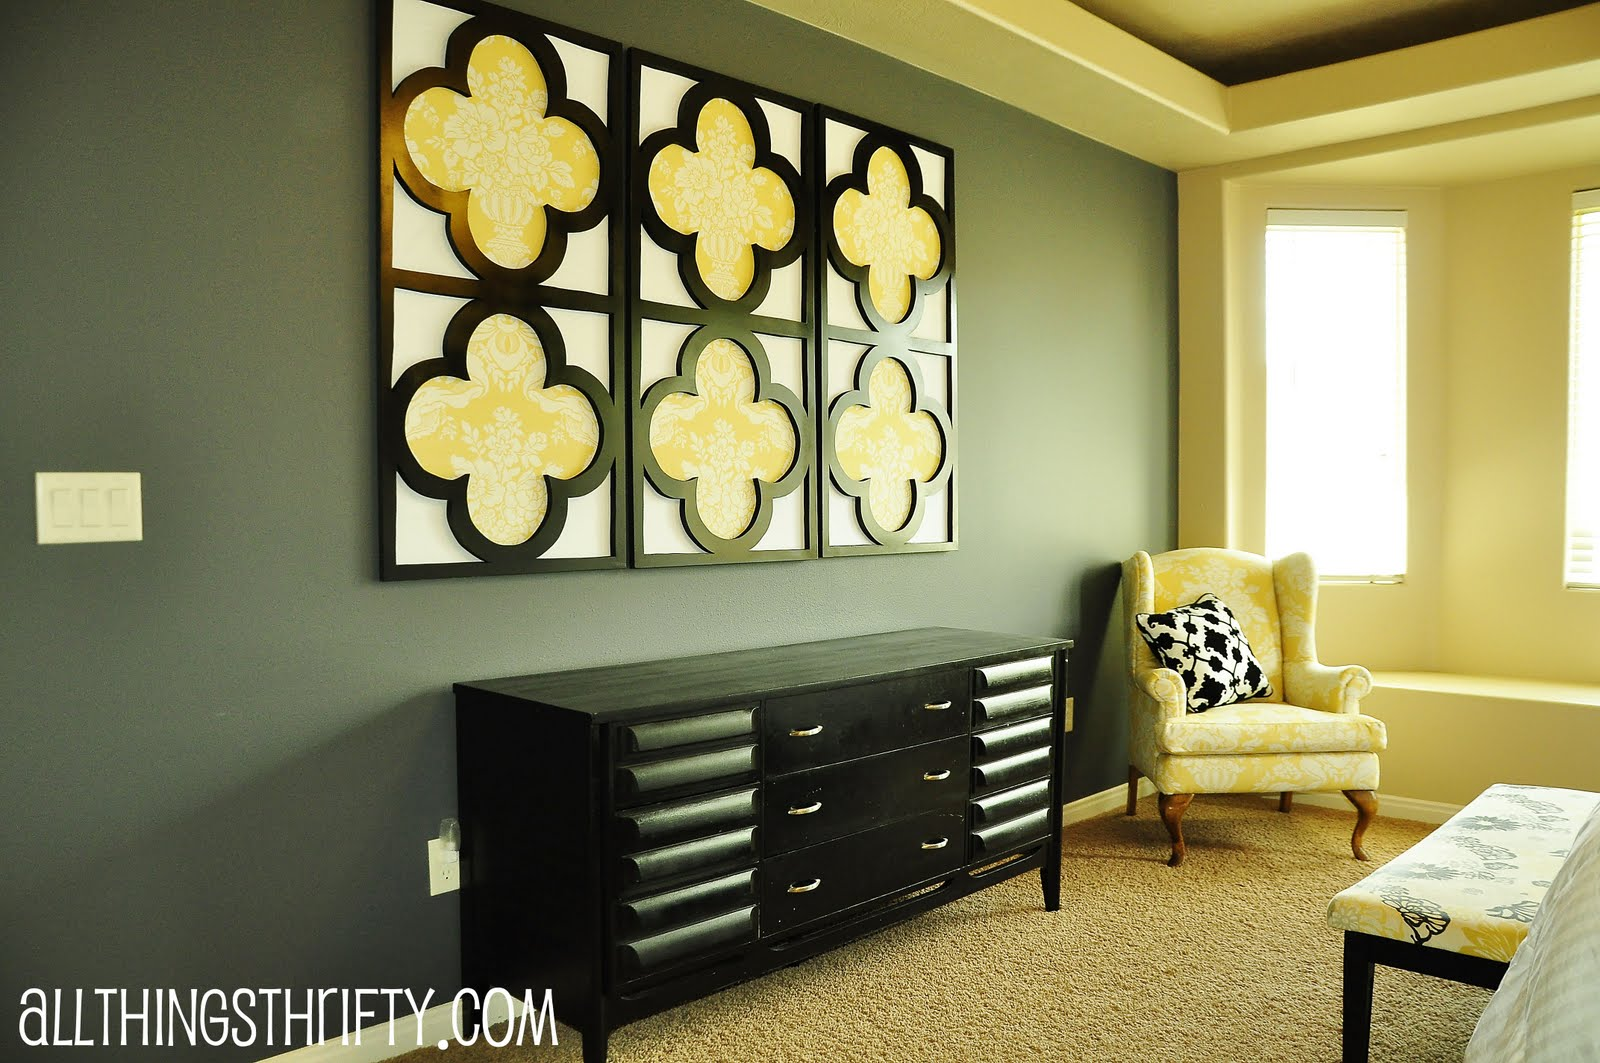 Cool Diy Wall Art Ideas : Tutorial quatrefoil diy decorative wall art